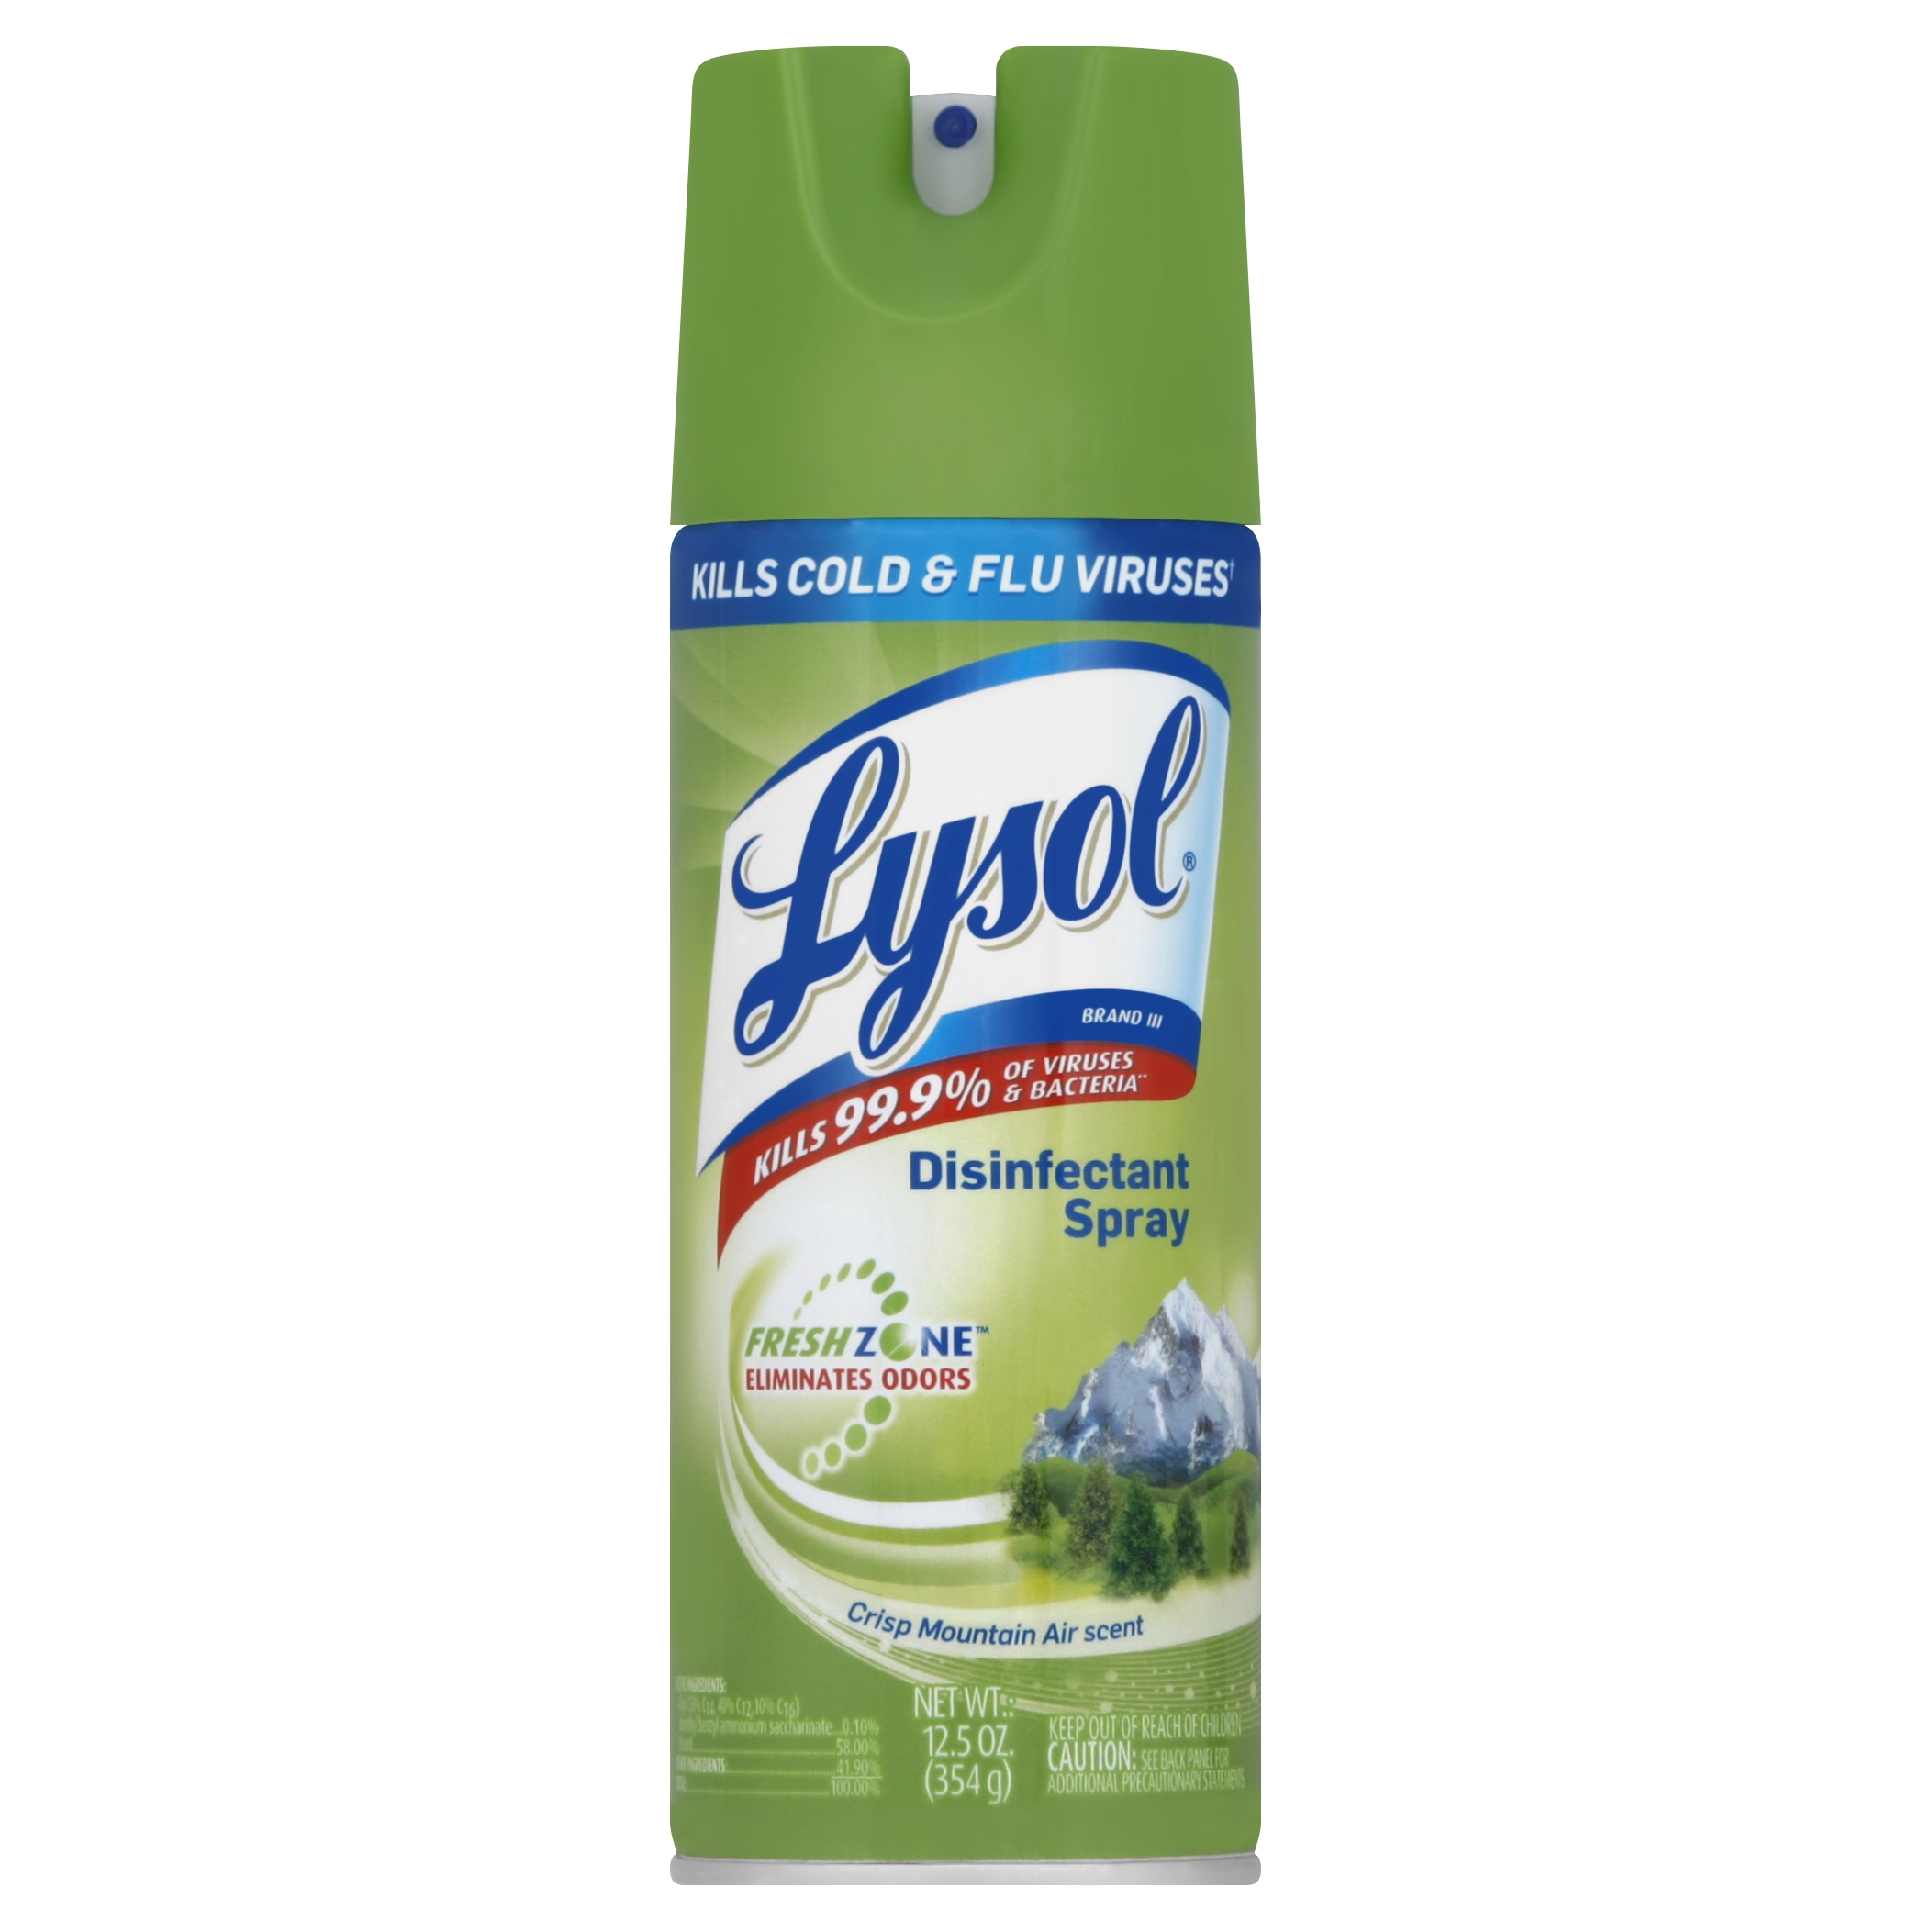 Lysol Disinfectant Spray, Crisp Mountain Air Scent, 12.5 Ounce